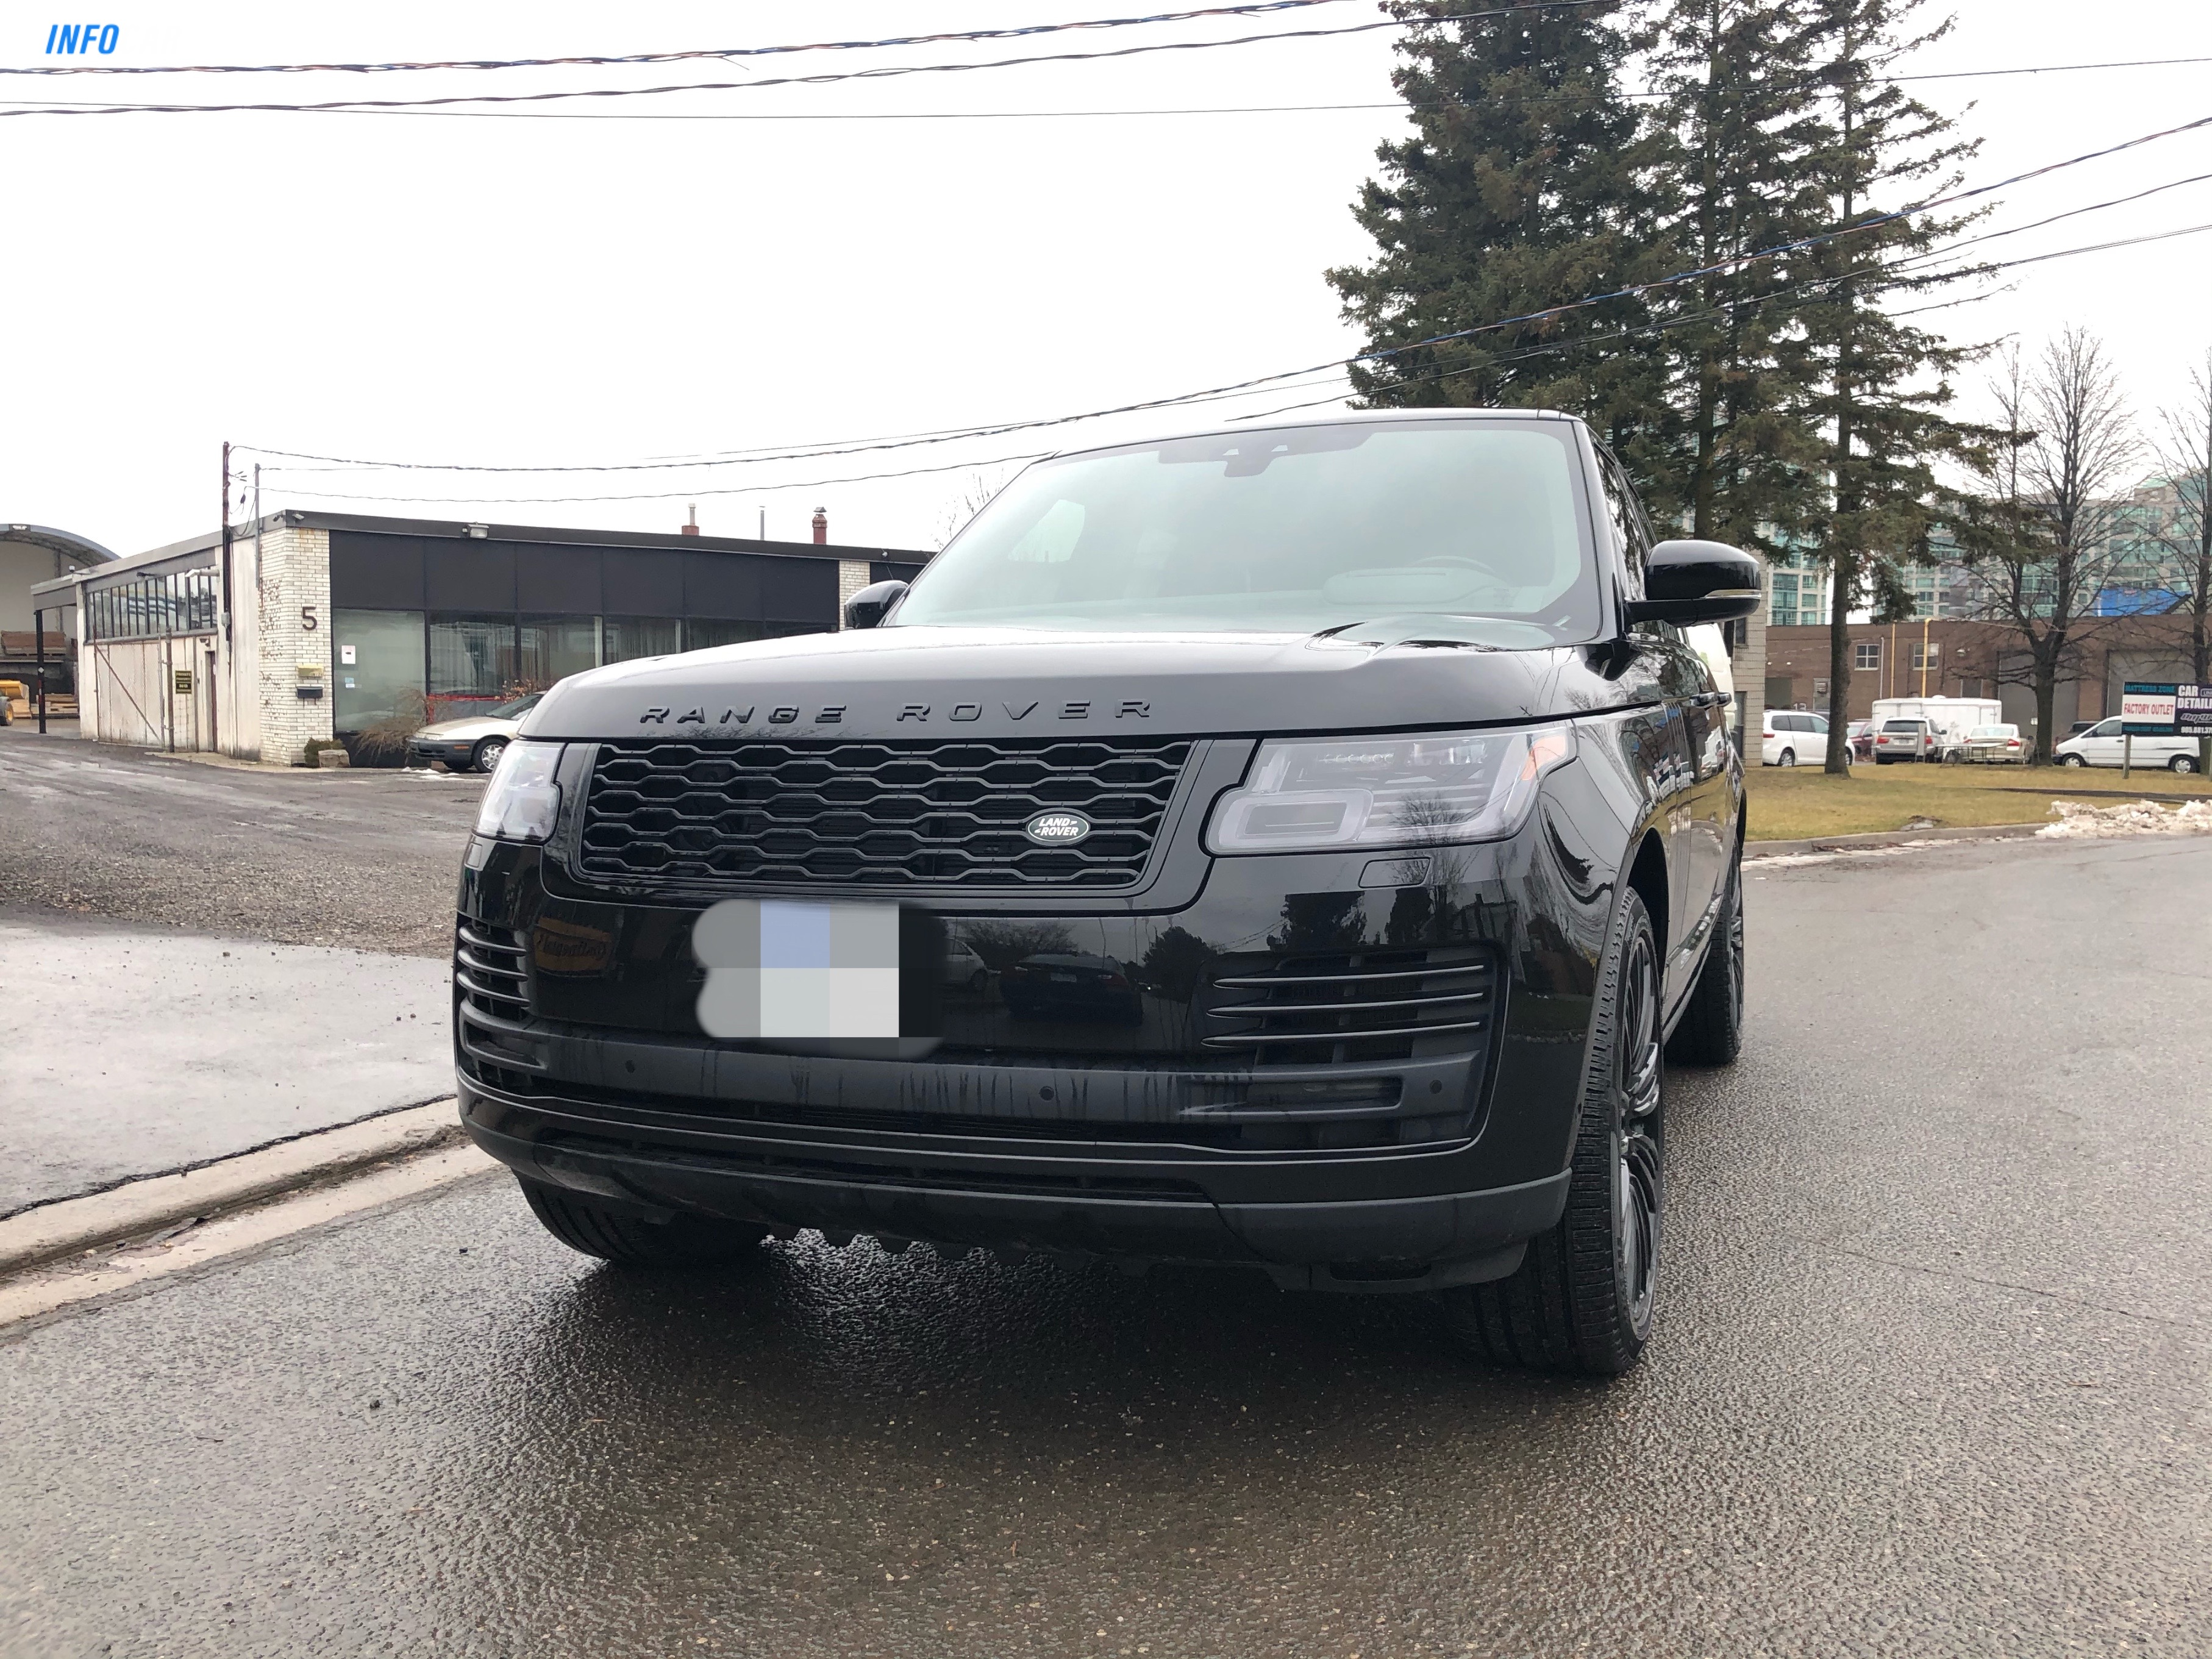 2019 Land Rover Range Rover V8 Supercharged - INFOCAR - Toronto's Most Comprehensive New and Used Auto Trading Platform